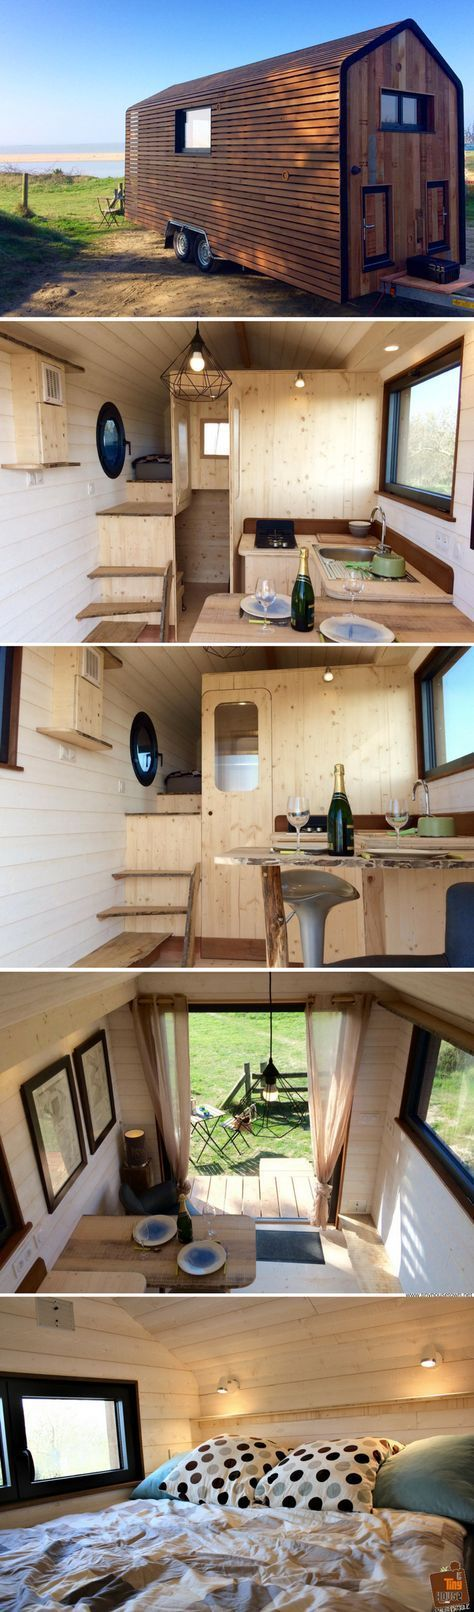 The Huttopie by La Tiny House Stars on left, allow for bathroom and storage underneath. Laundry shed attached but separate. Heated. Washer, eco dryer? Airers.